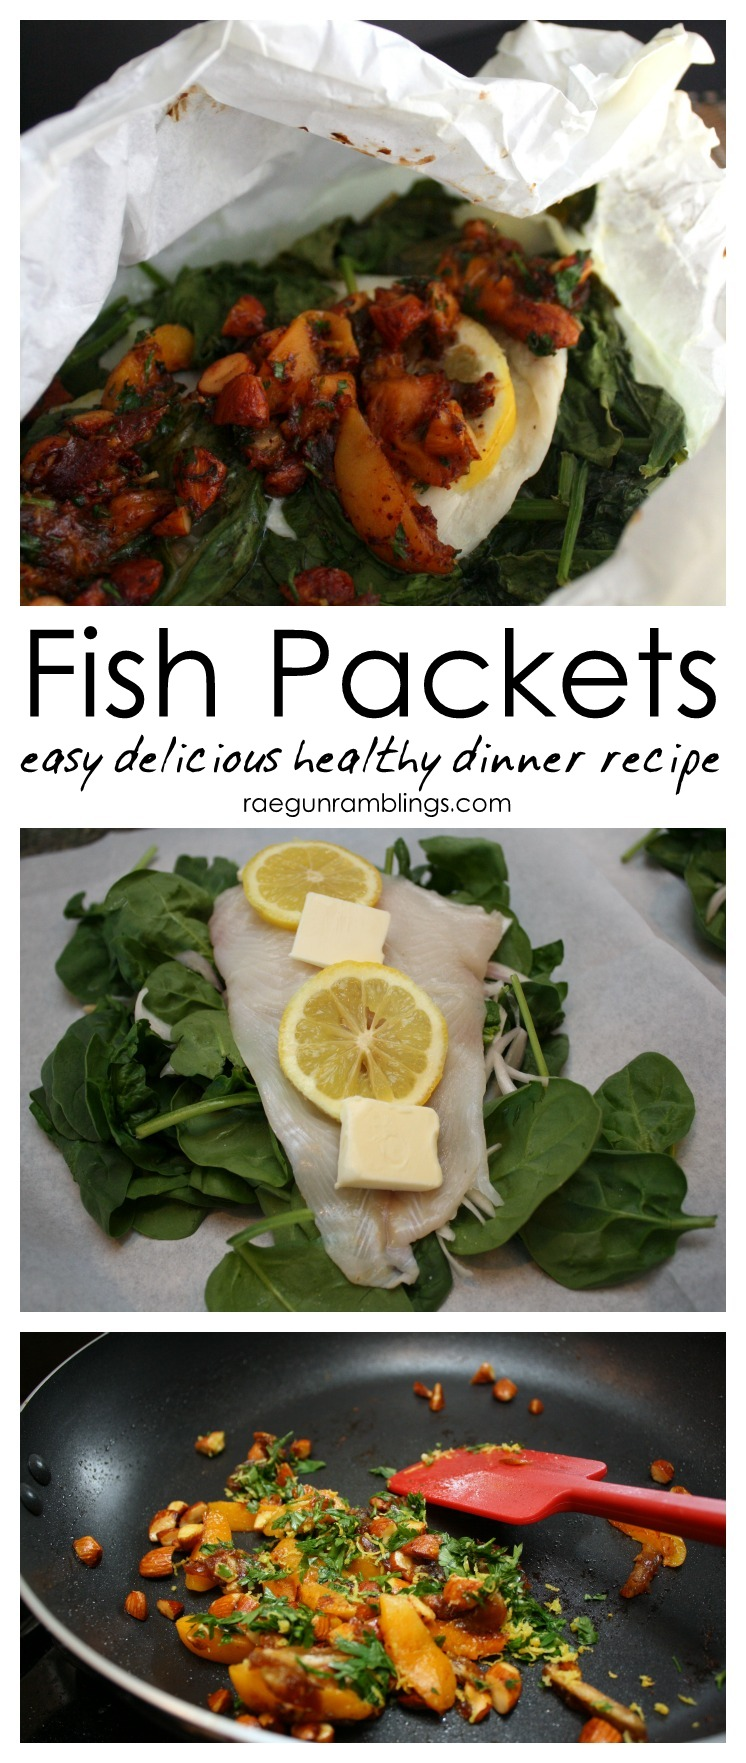 love this recipe. super healthy easy fish dinner recipe with easy clean up